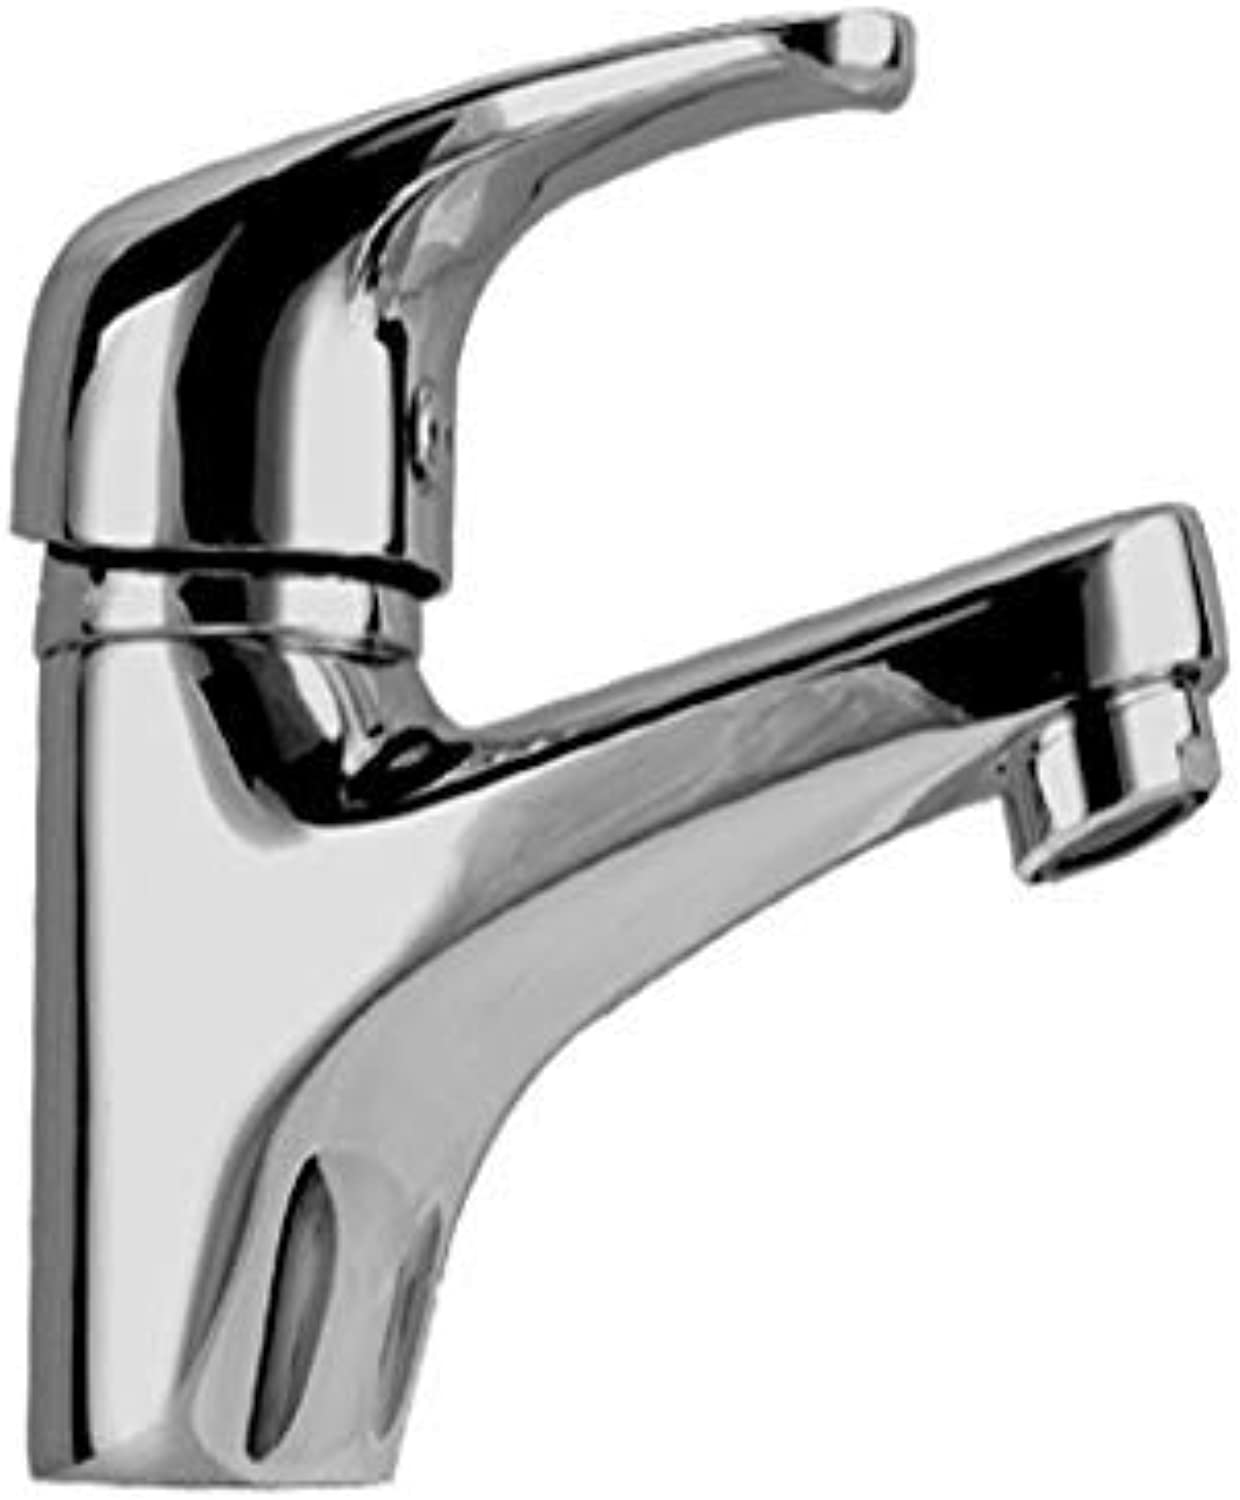 ZHAS Faucet, cold mix tap for sink, bathroom